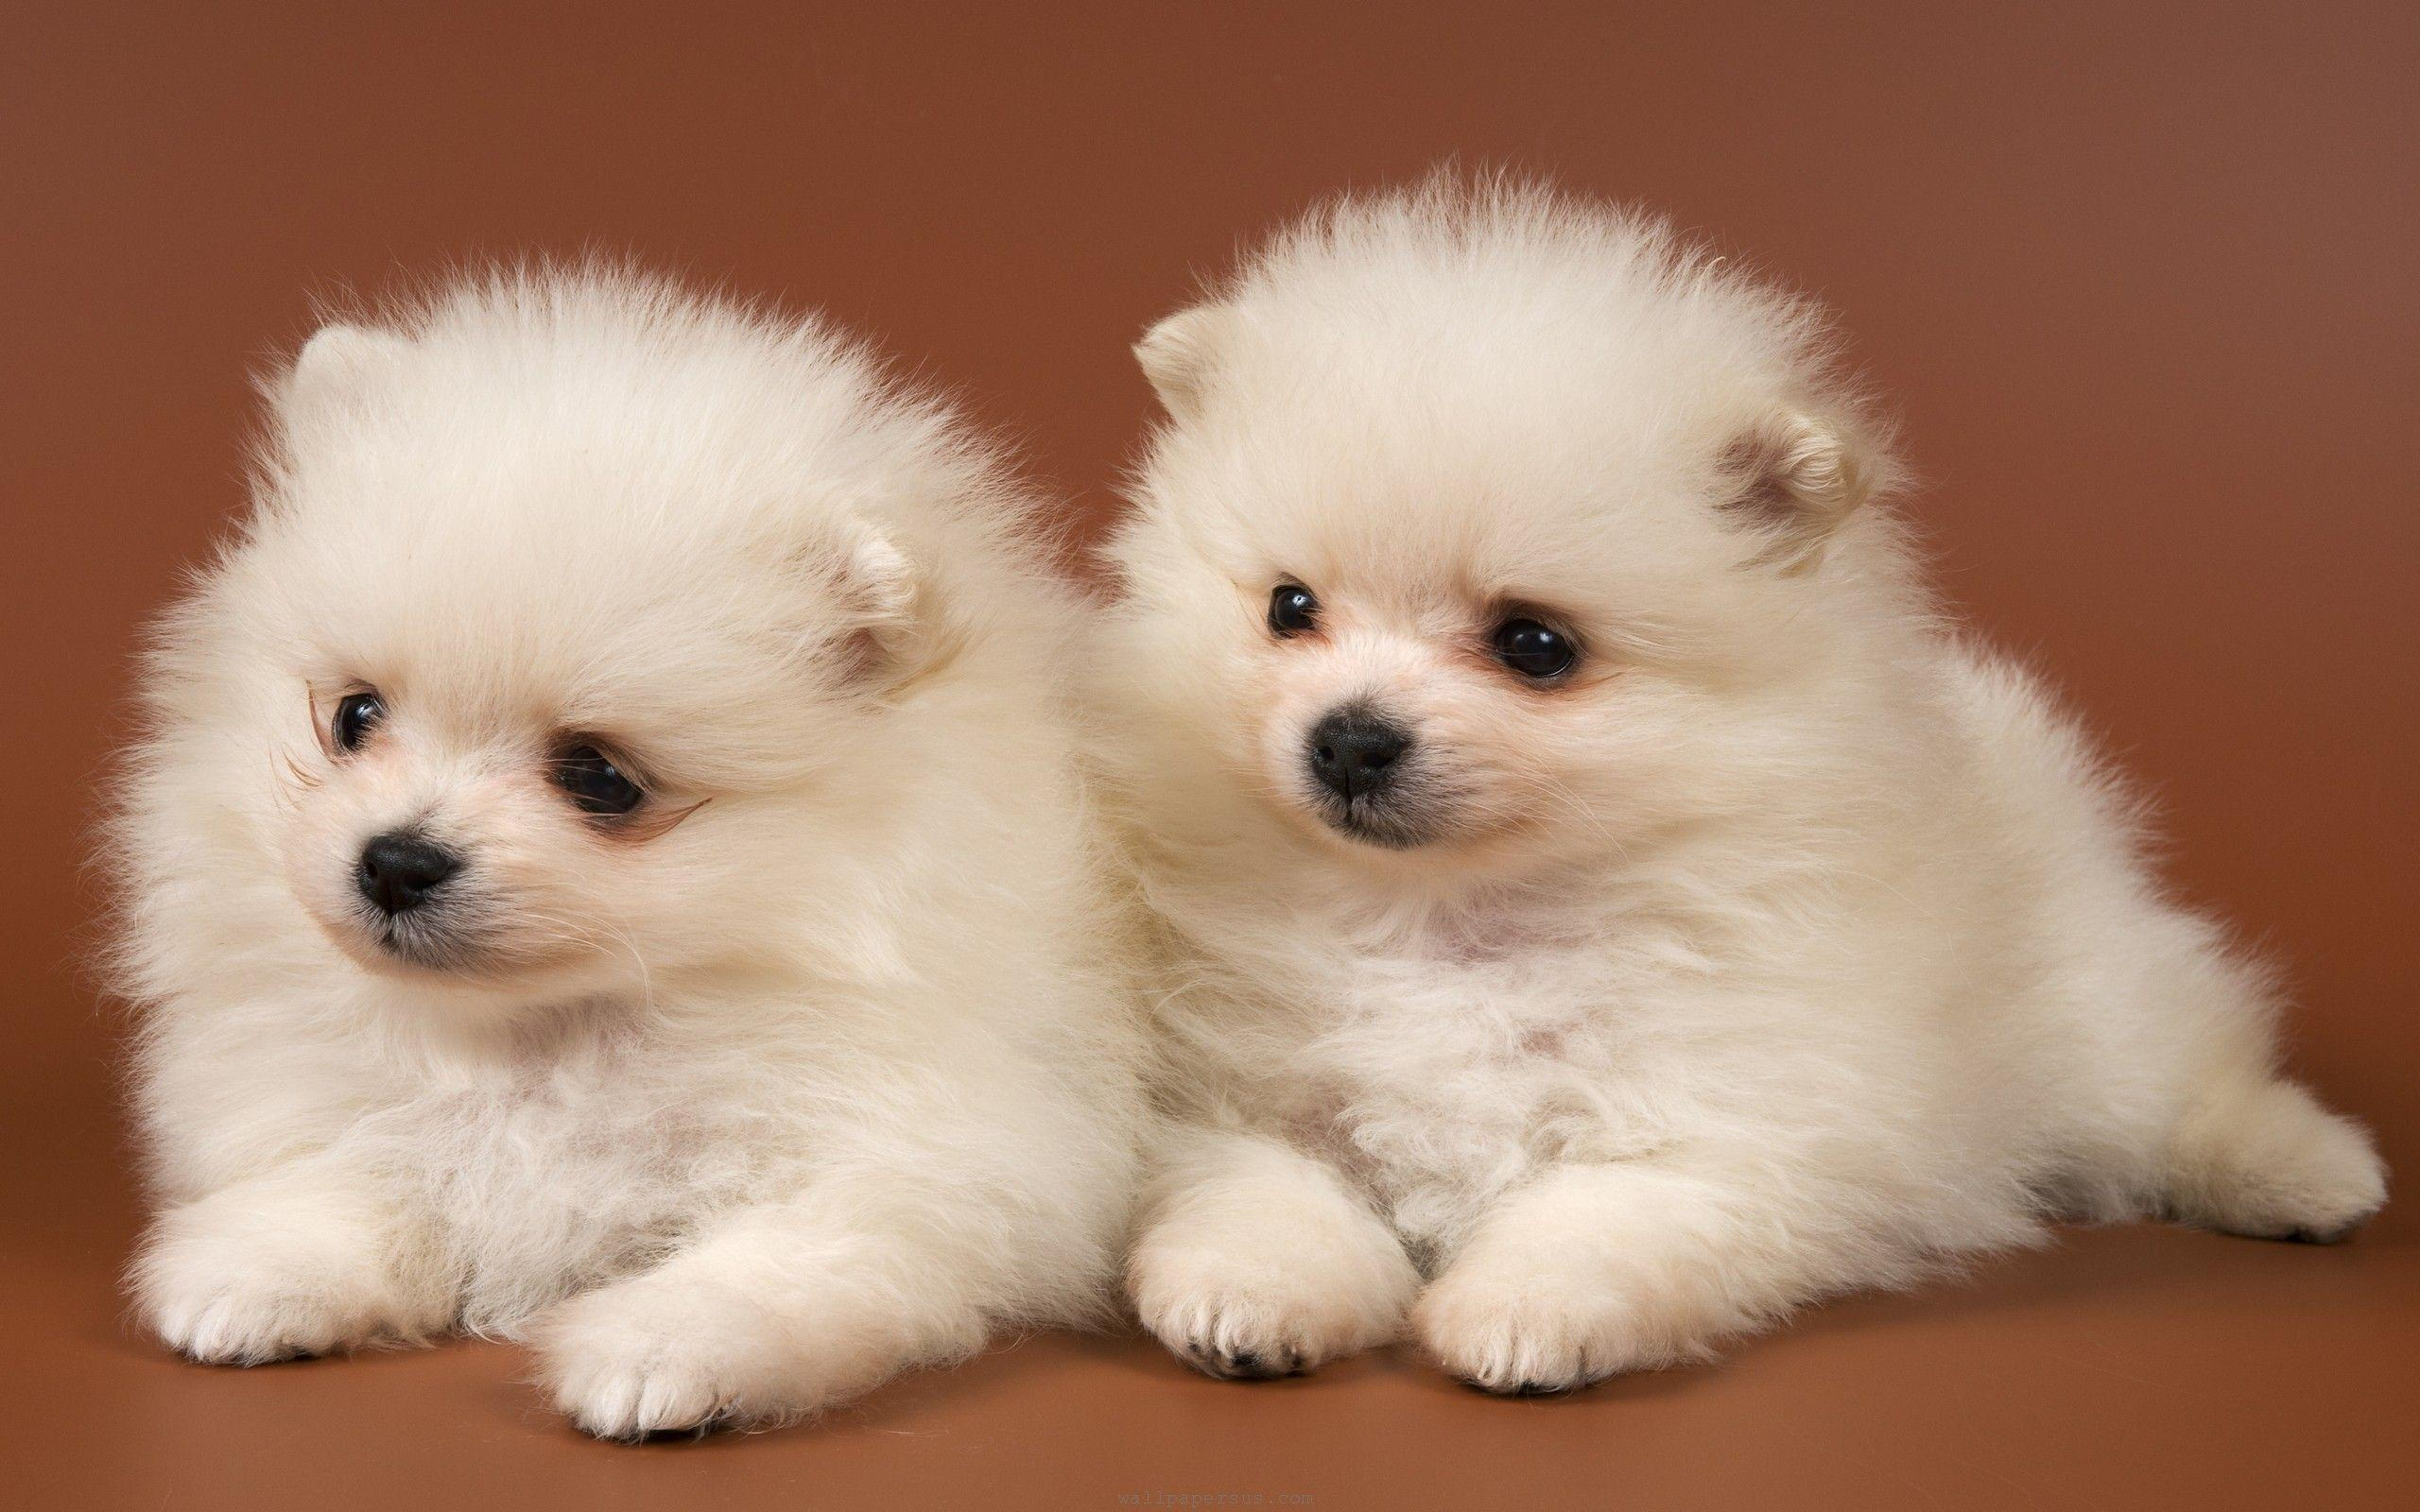 Dogs And Puppies Wallpaper Cute Dogs And P...